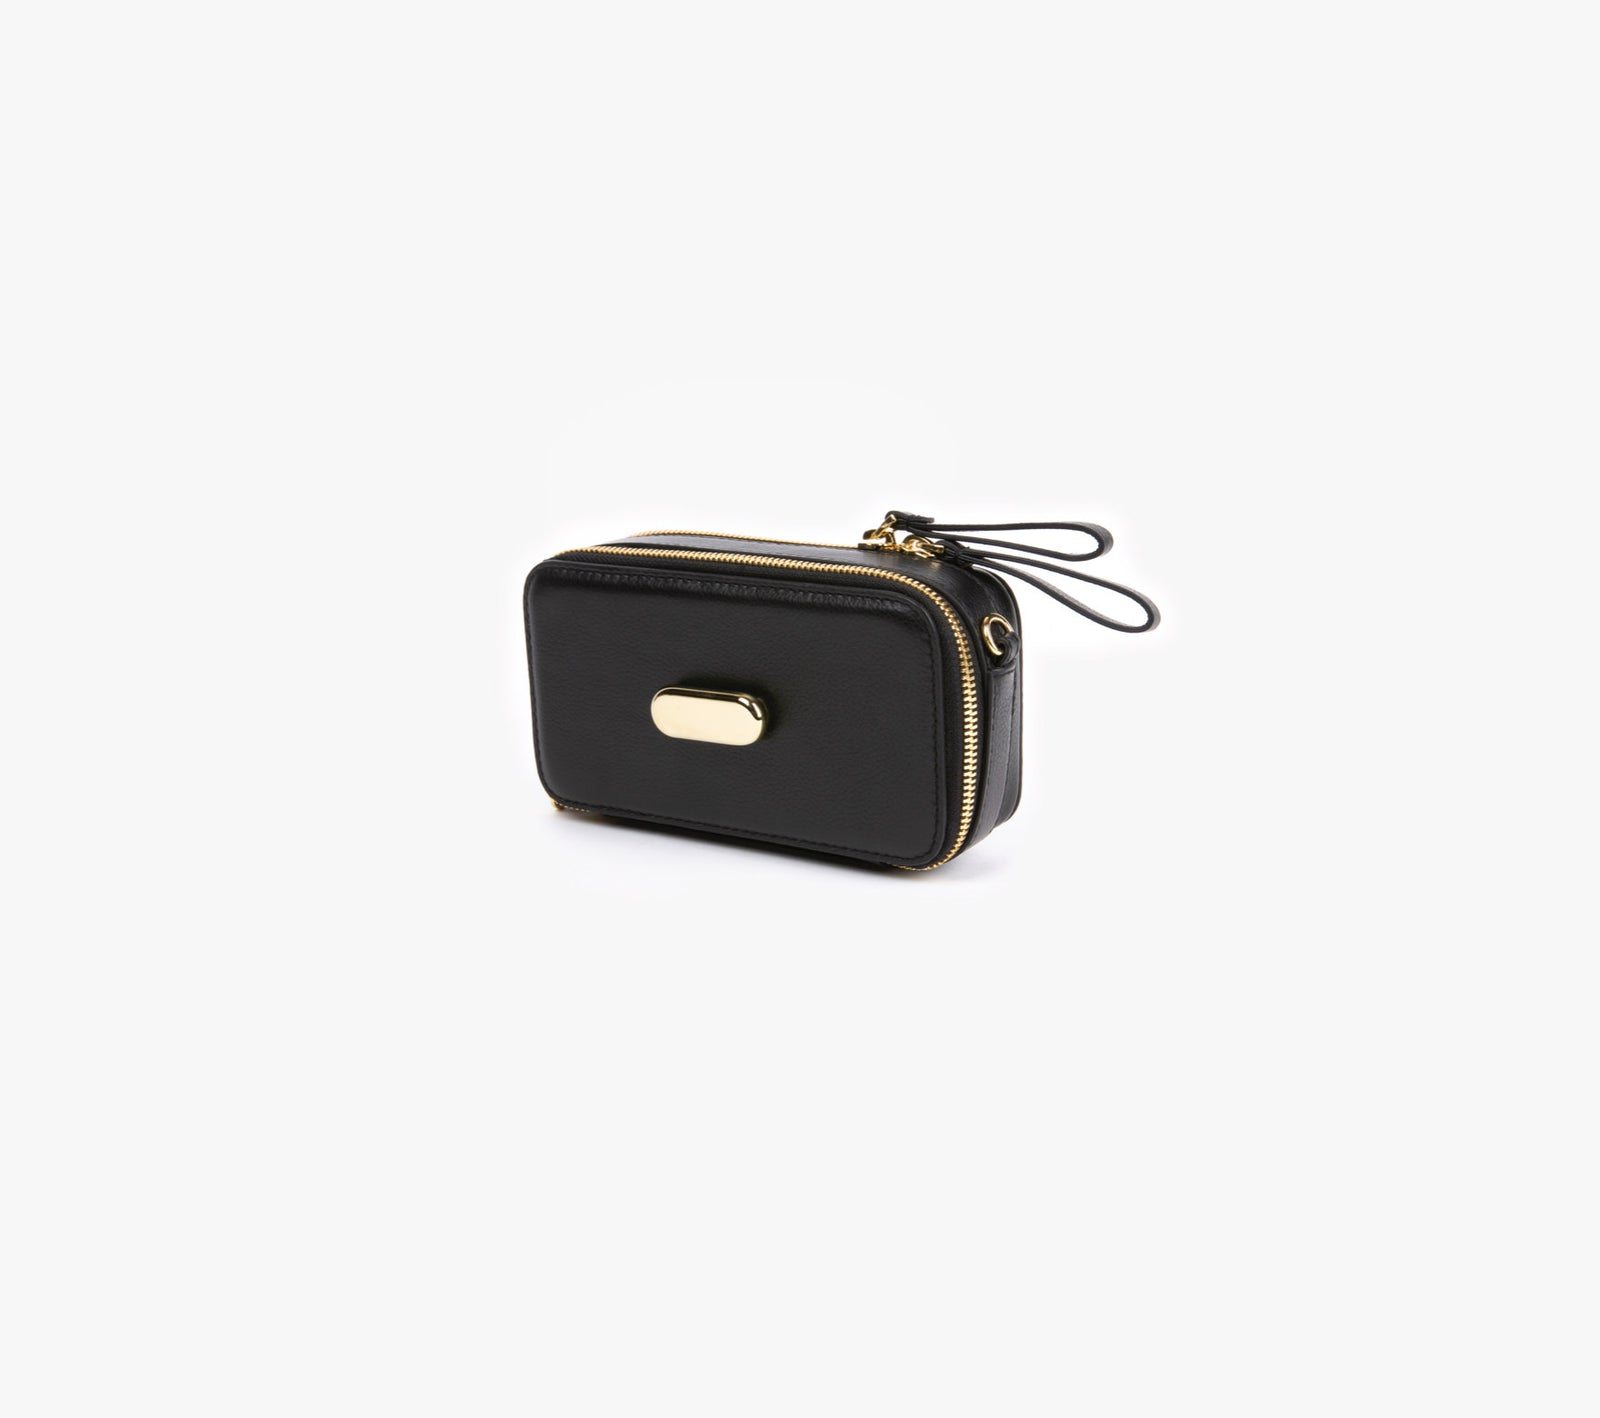 Essentials Bag in Black